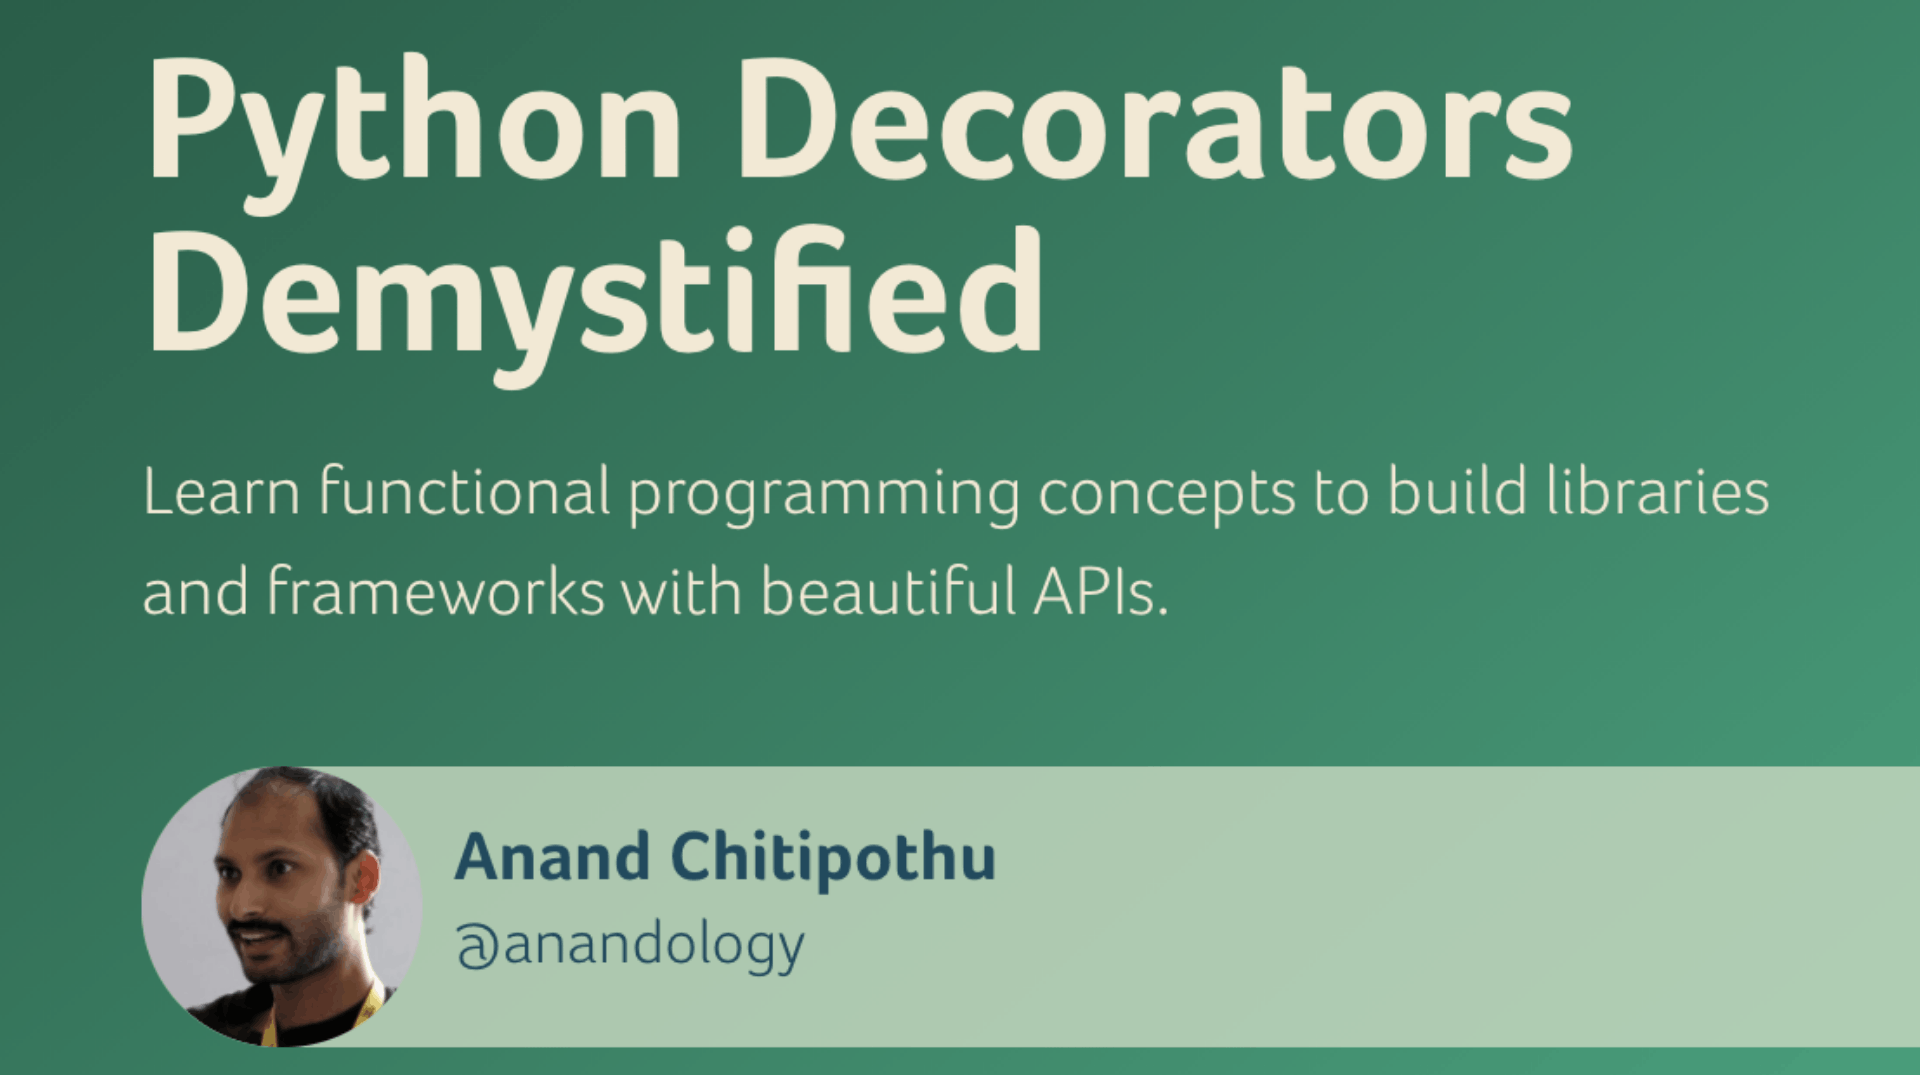 Python Decorators Demystified